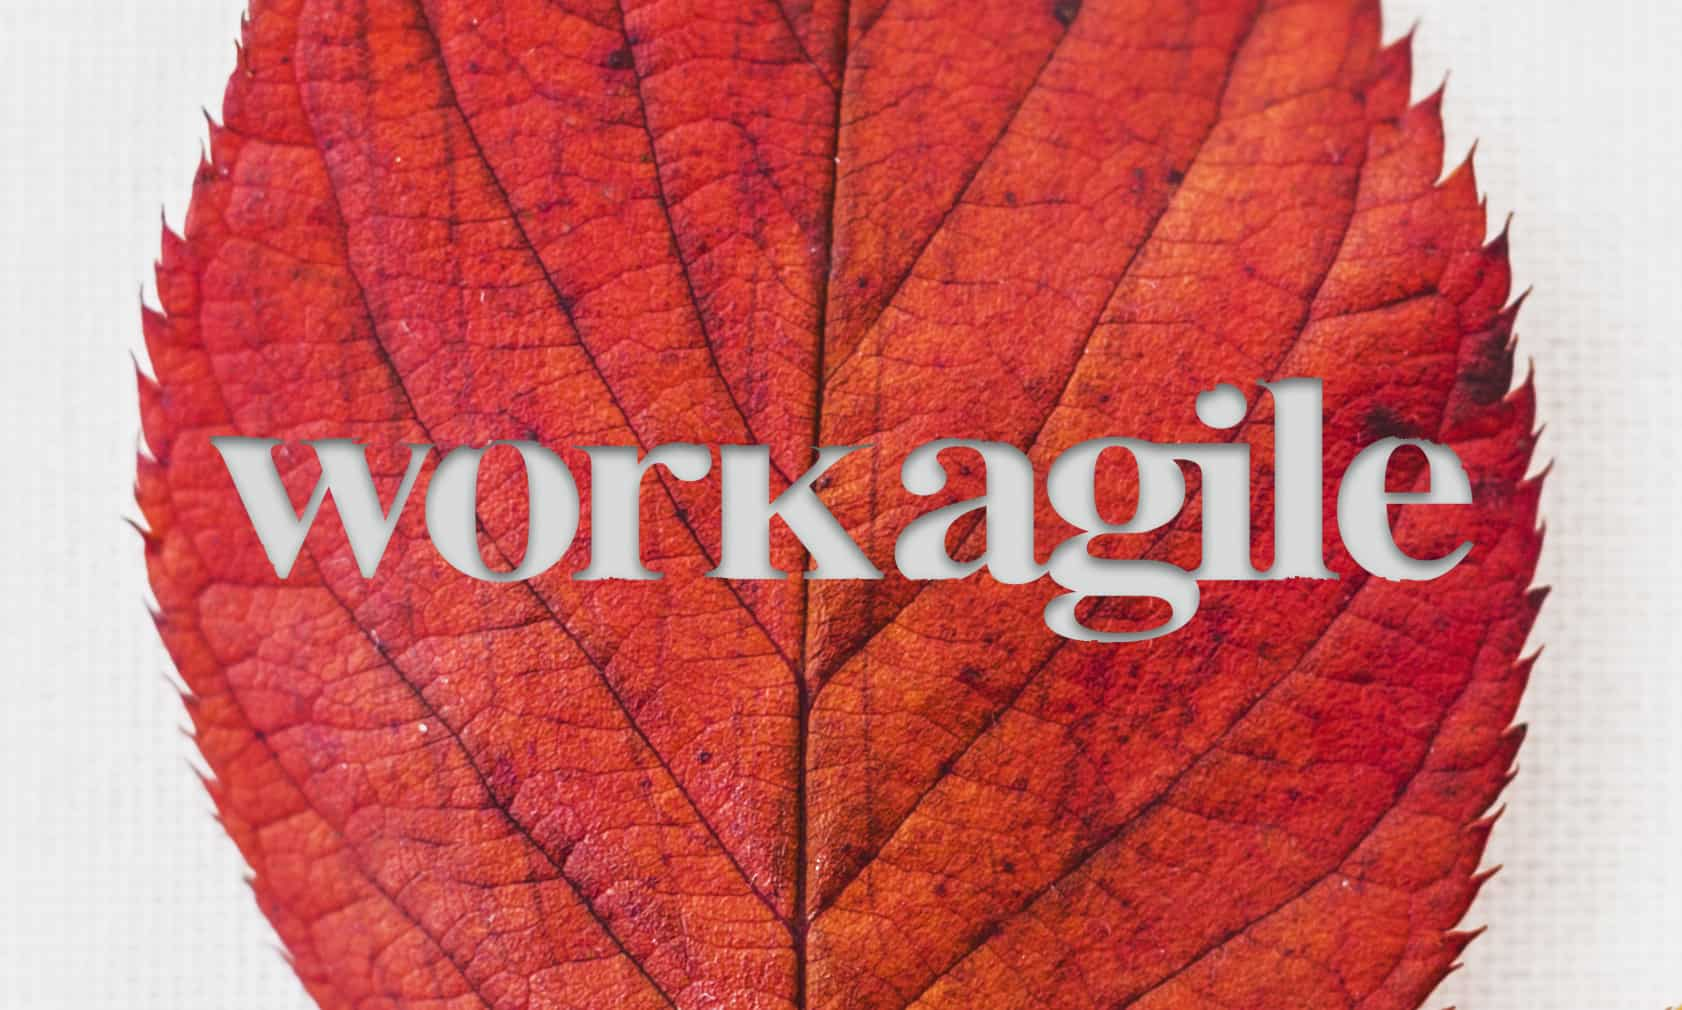 Workagile logo etched in an autumn leaf